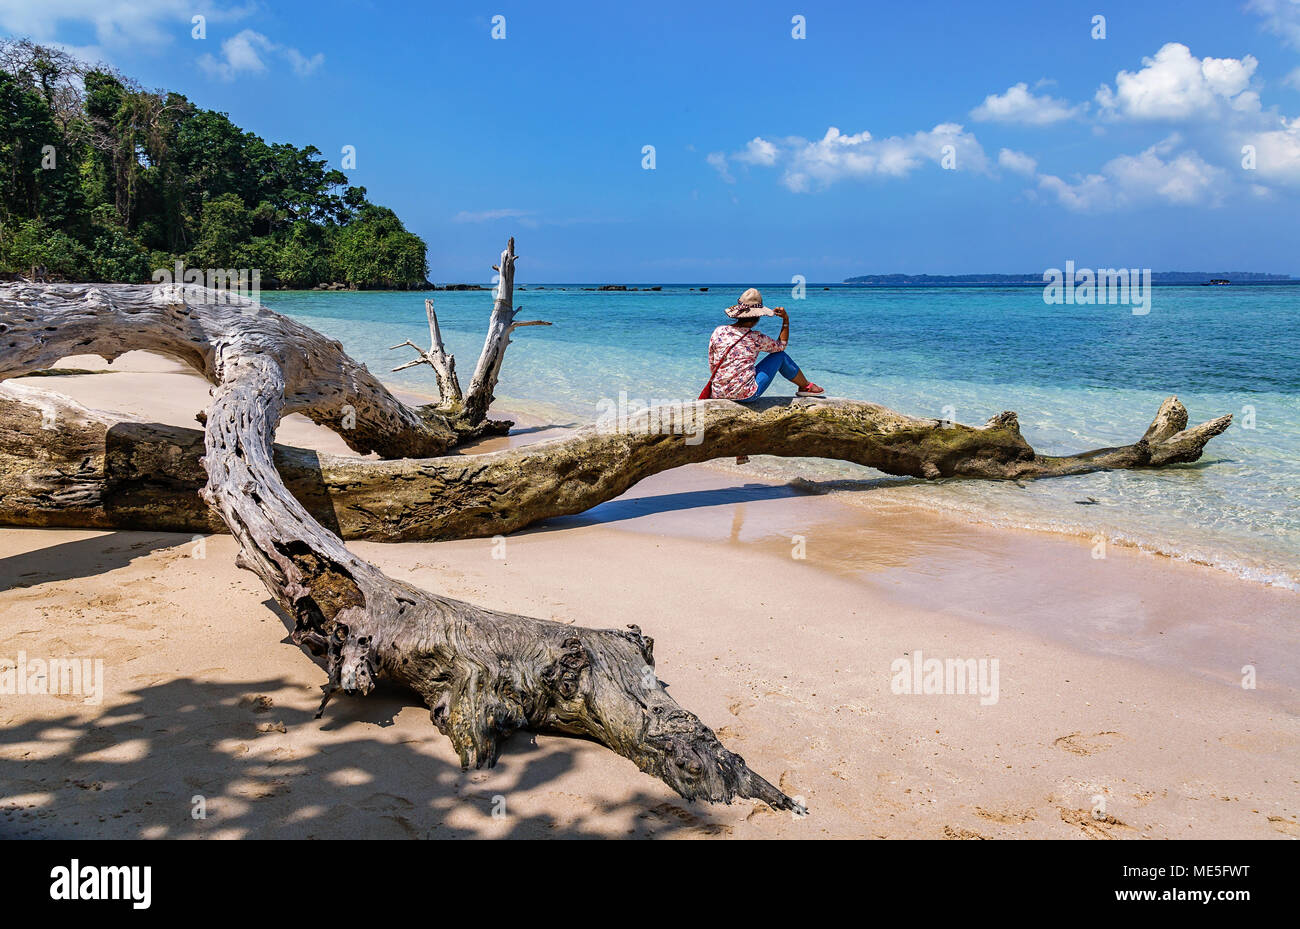 Young female model tourist pose at the Jolly Buoy island beach at Andaman India. - Stock Image